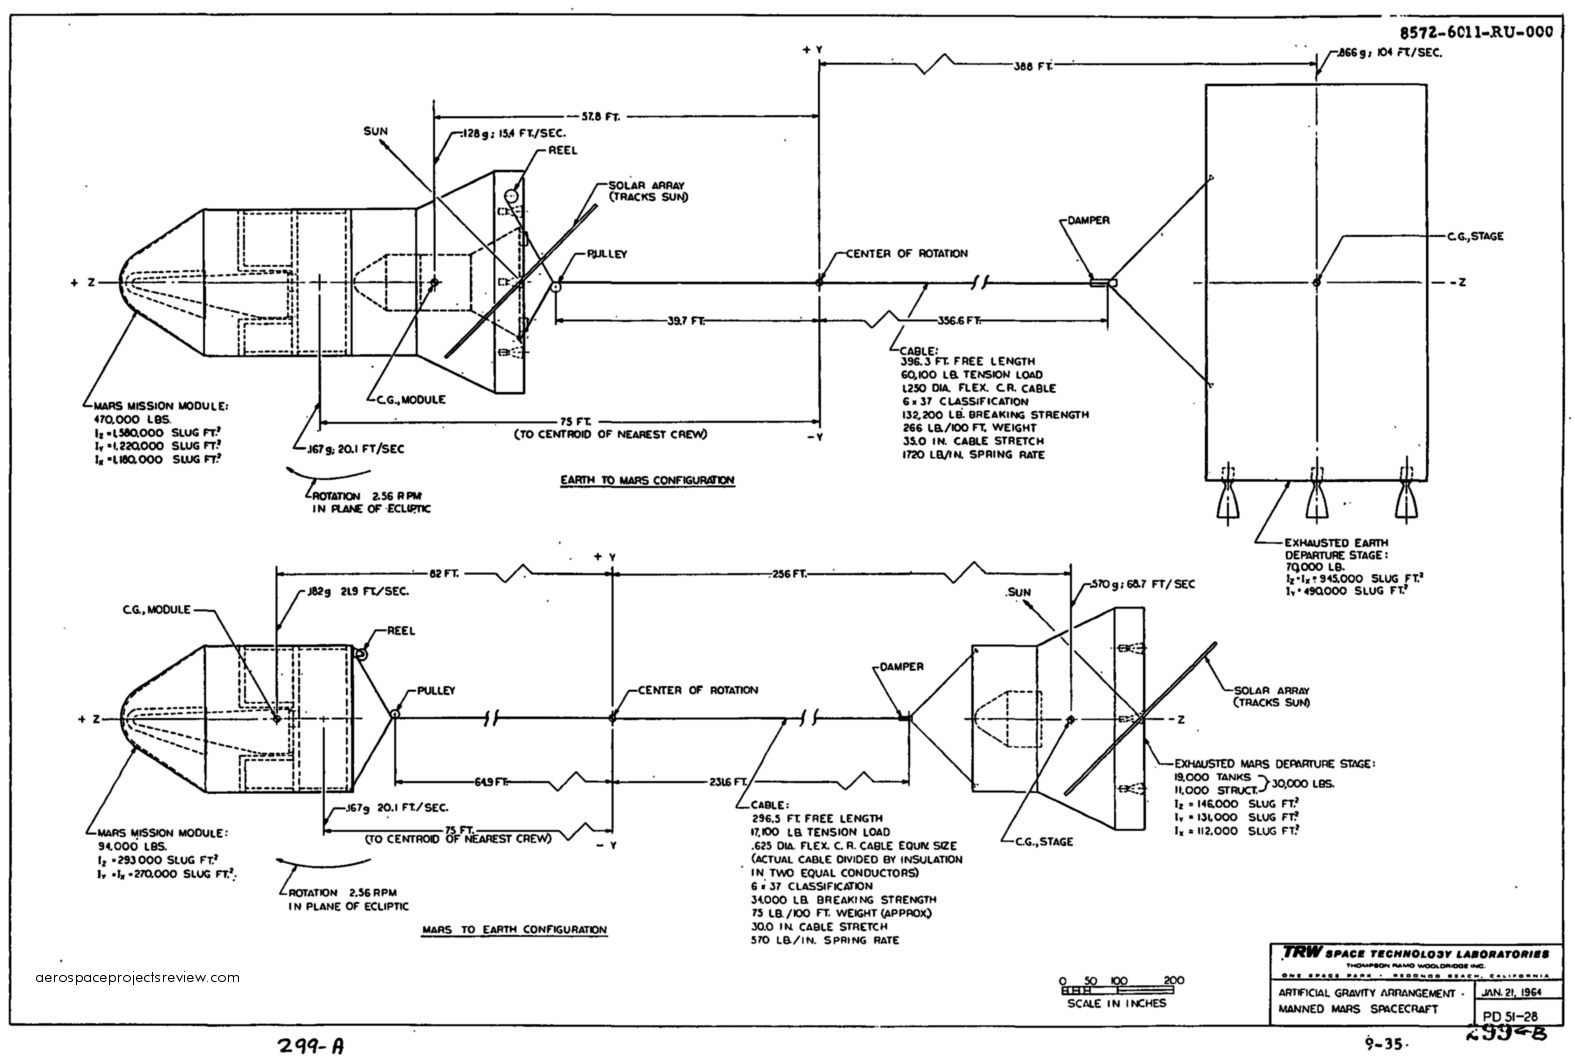 Trw Mars Ship Aerospace Projects Review Blog Saturn Frame Diagram The Complete Spacecraft Would Require Six V Flights To Orbit Components Which Be Assembled In Earth